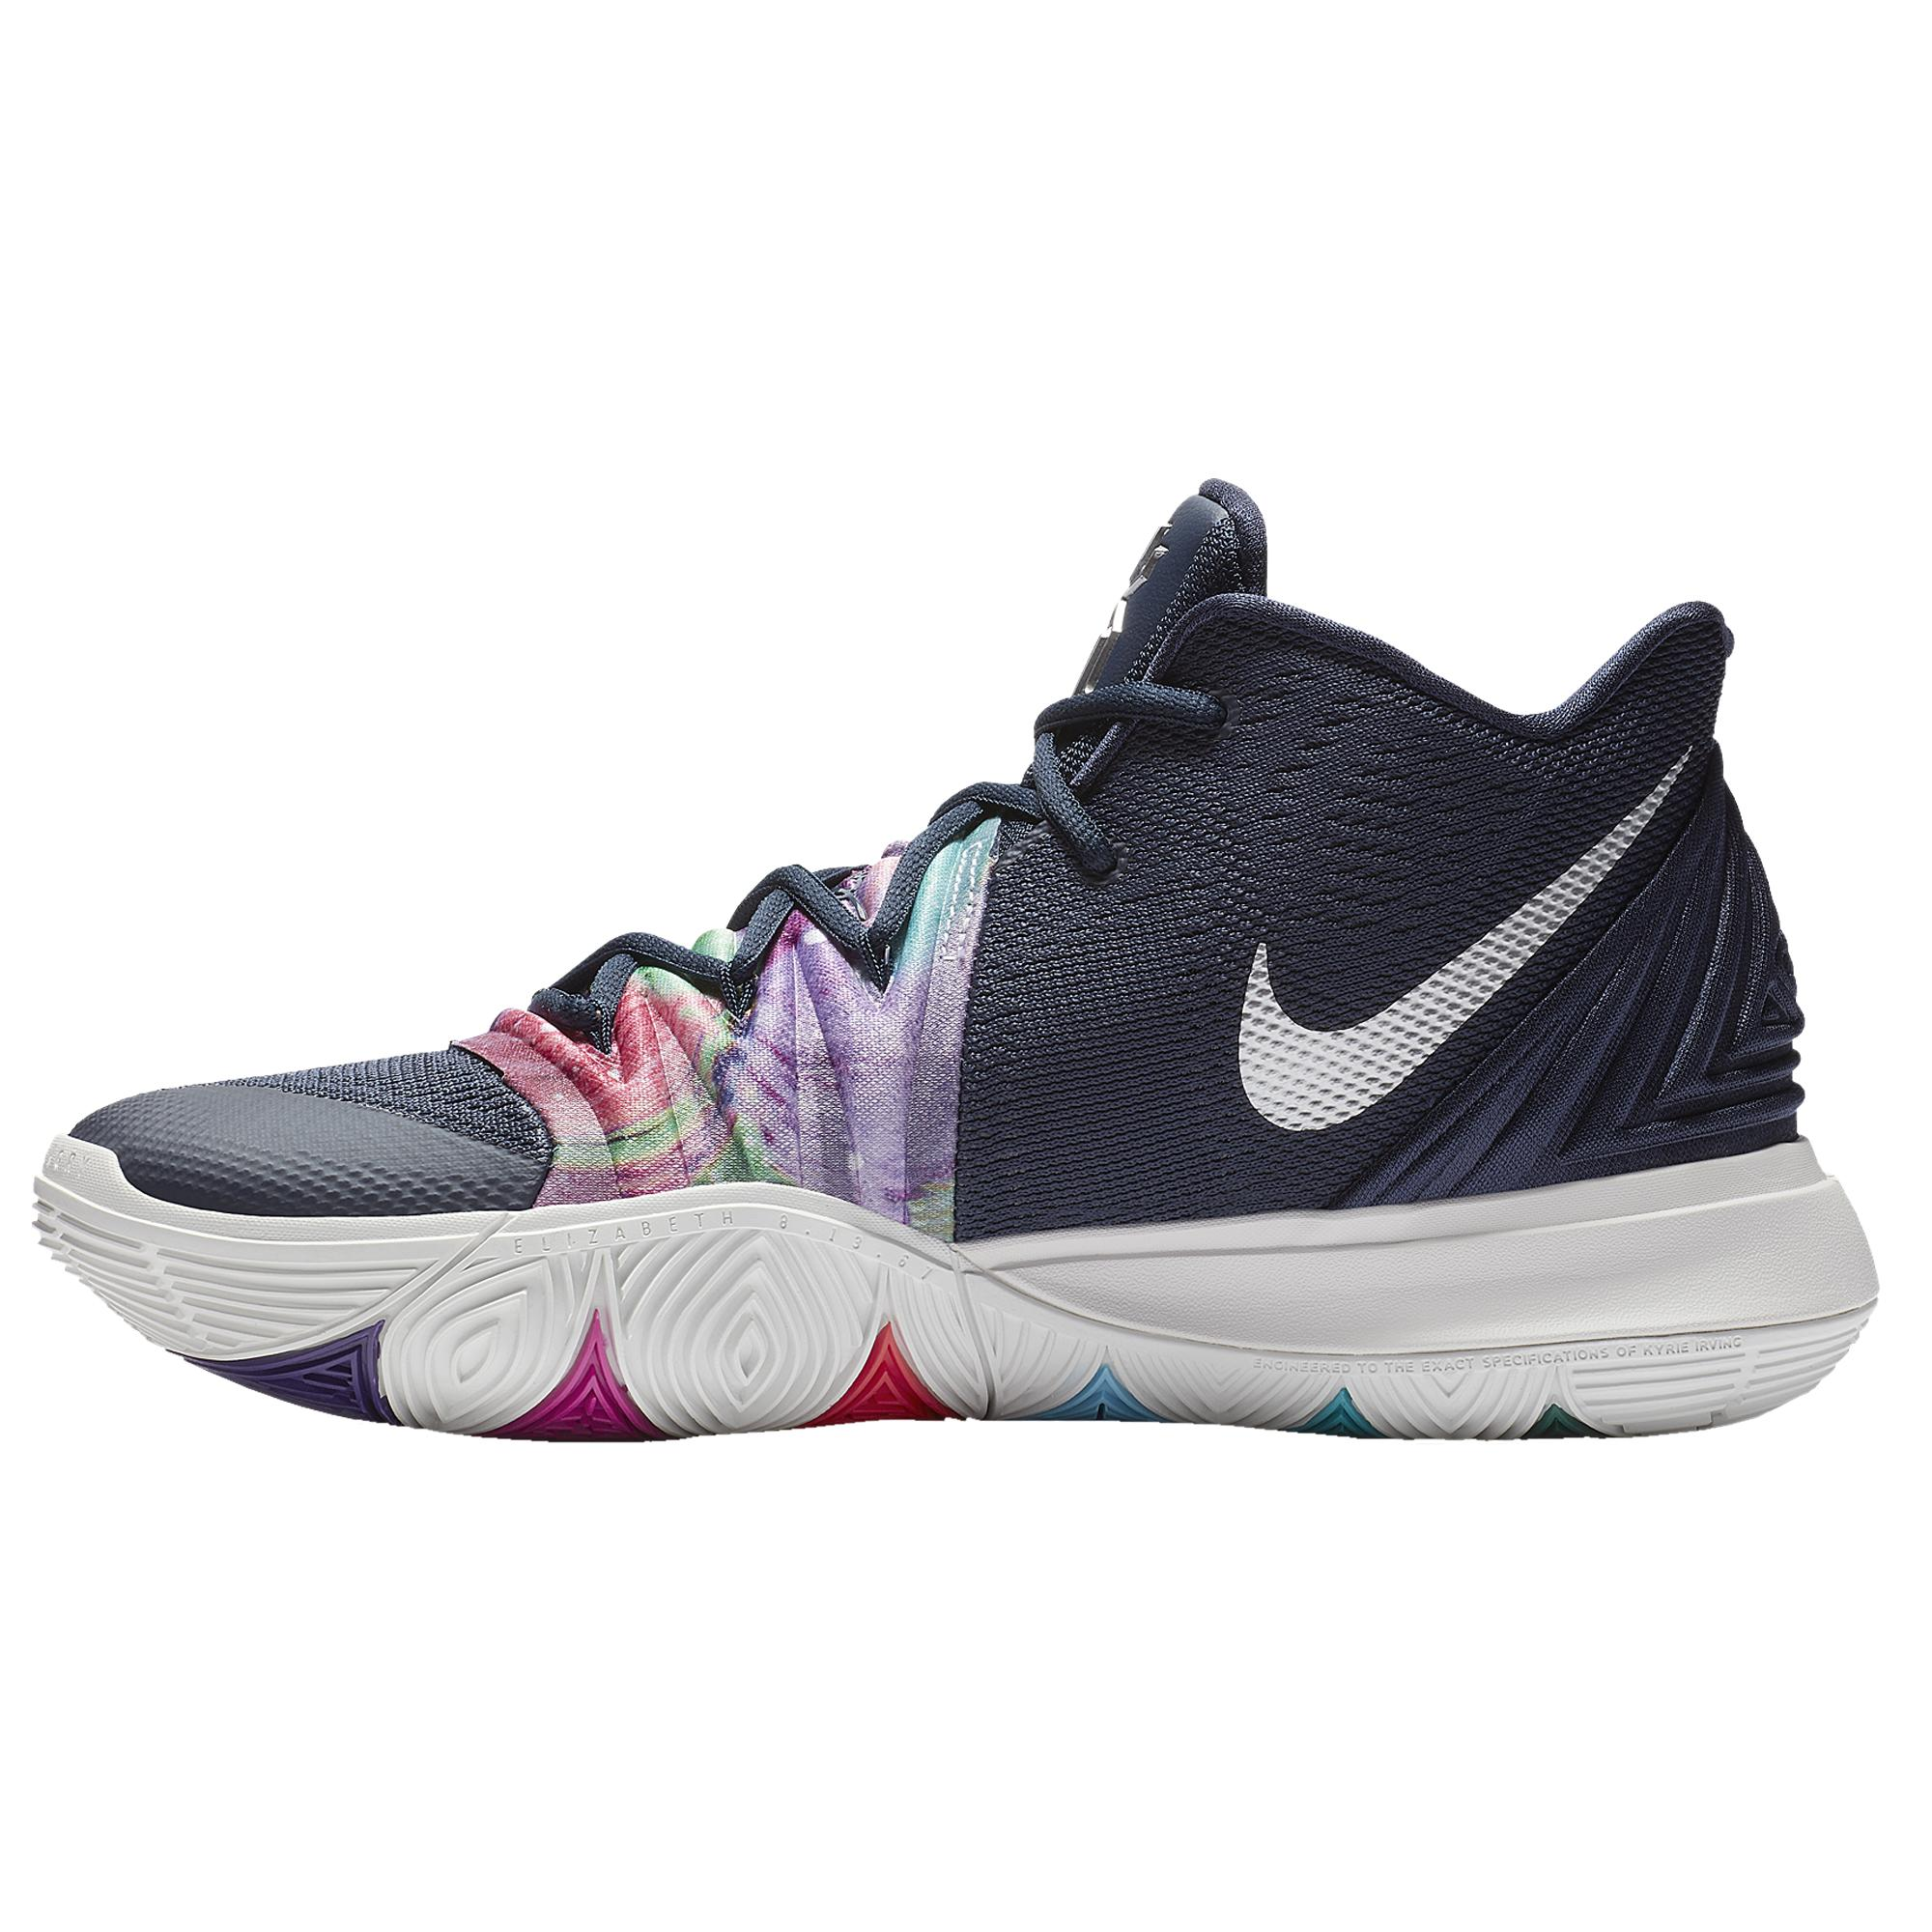 detailed look dd3a0 9bb33 Men's Blue Kyrie 5 Basketball Shoes